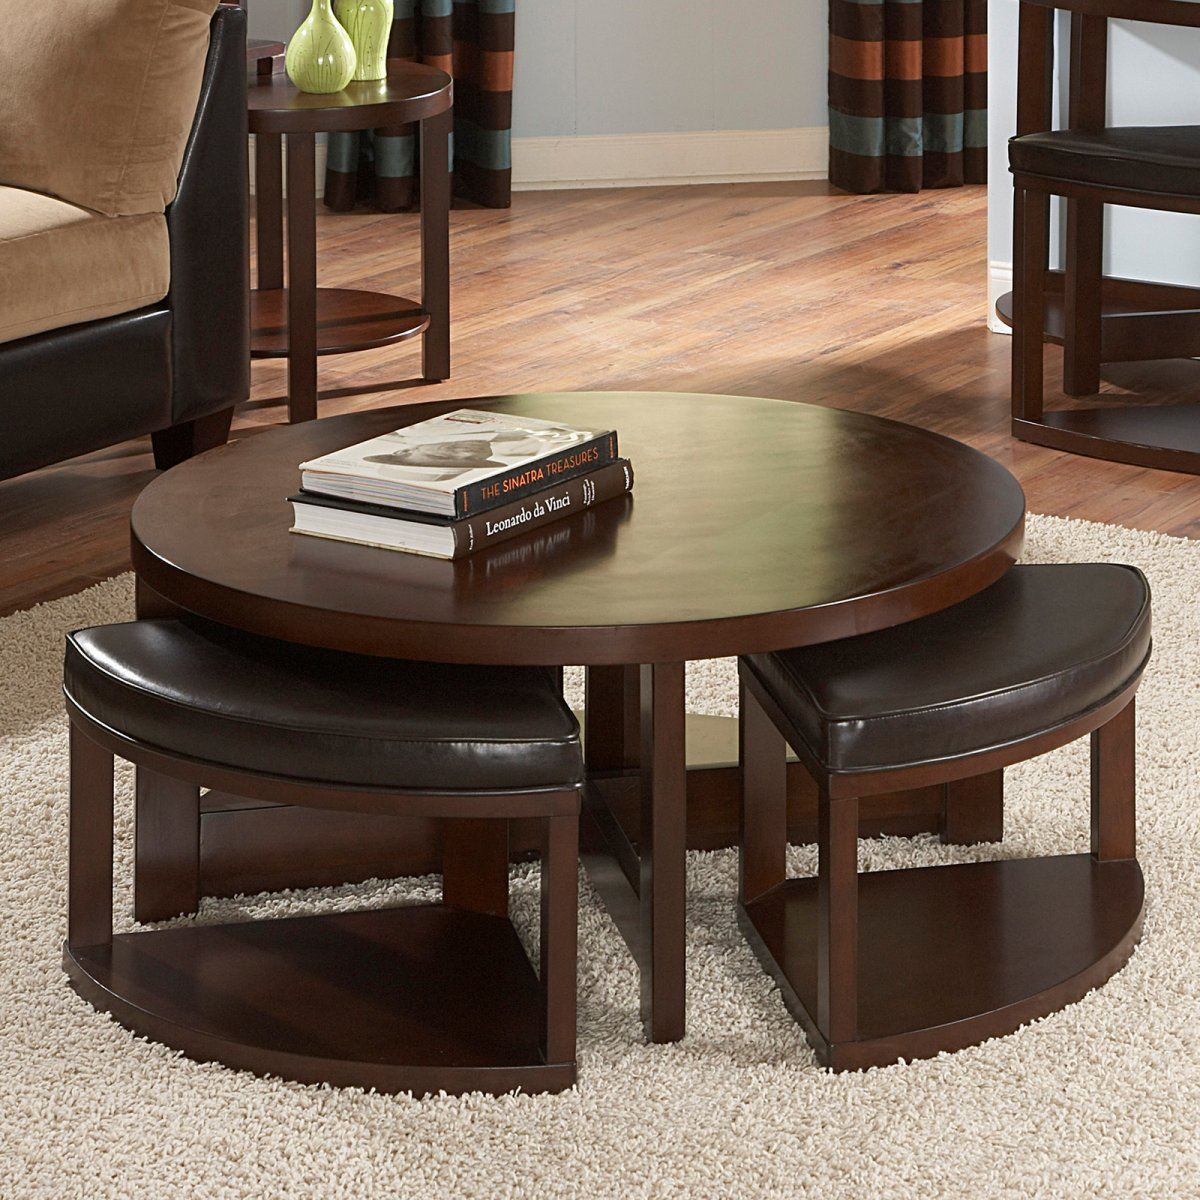 Beautiful Coffee Table Ottoman Sets For Living Room Modern Living Room Design With Round Cocktail Round Coffee Table Sets (Image 3 of 10)